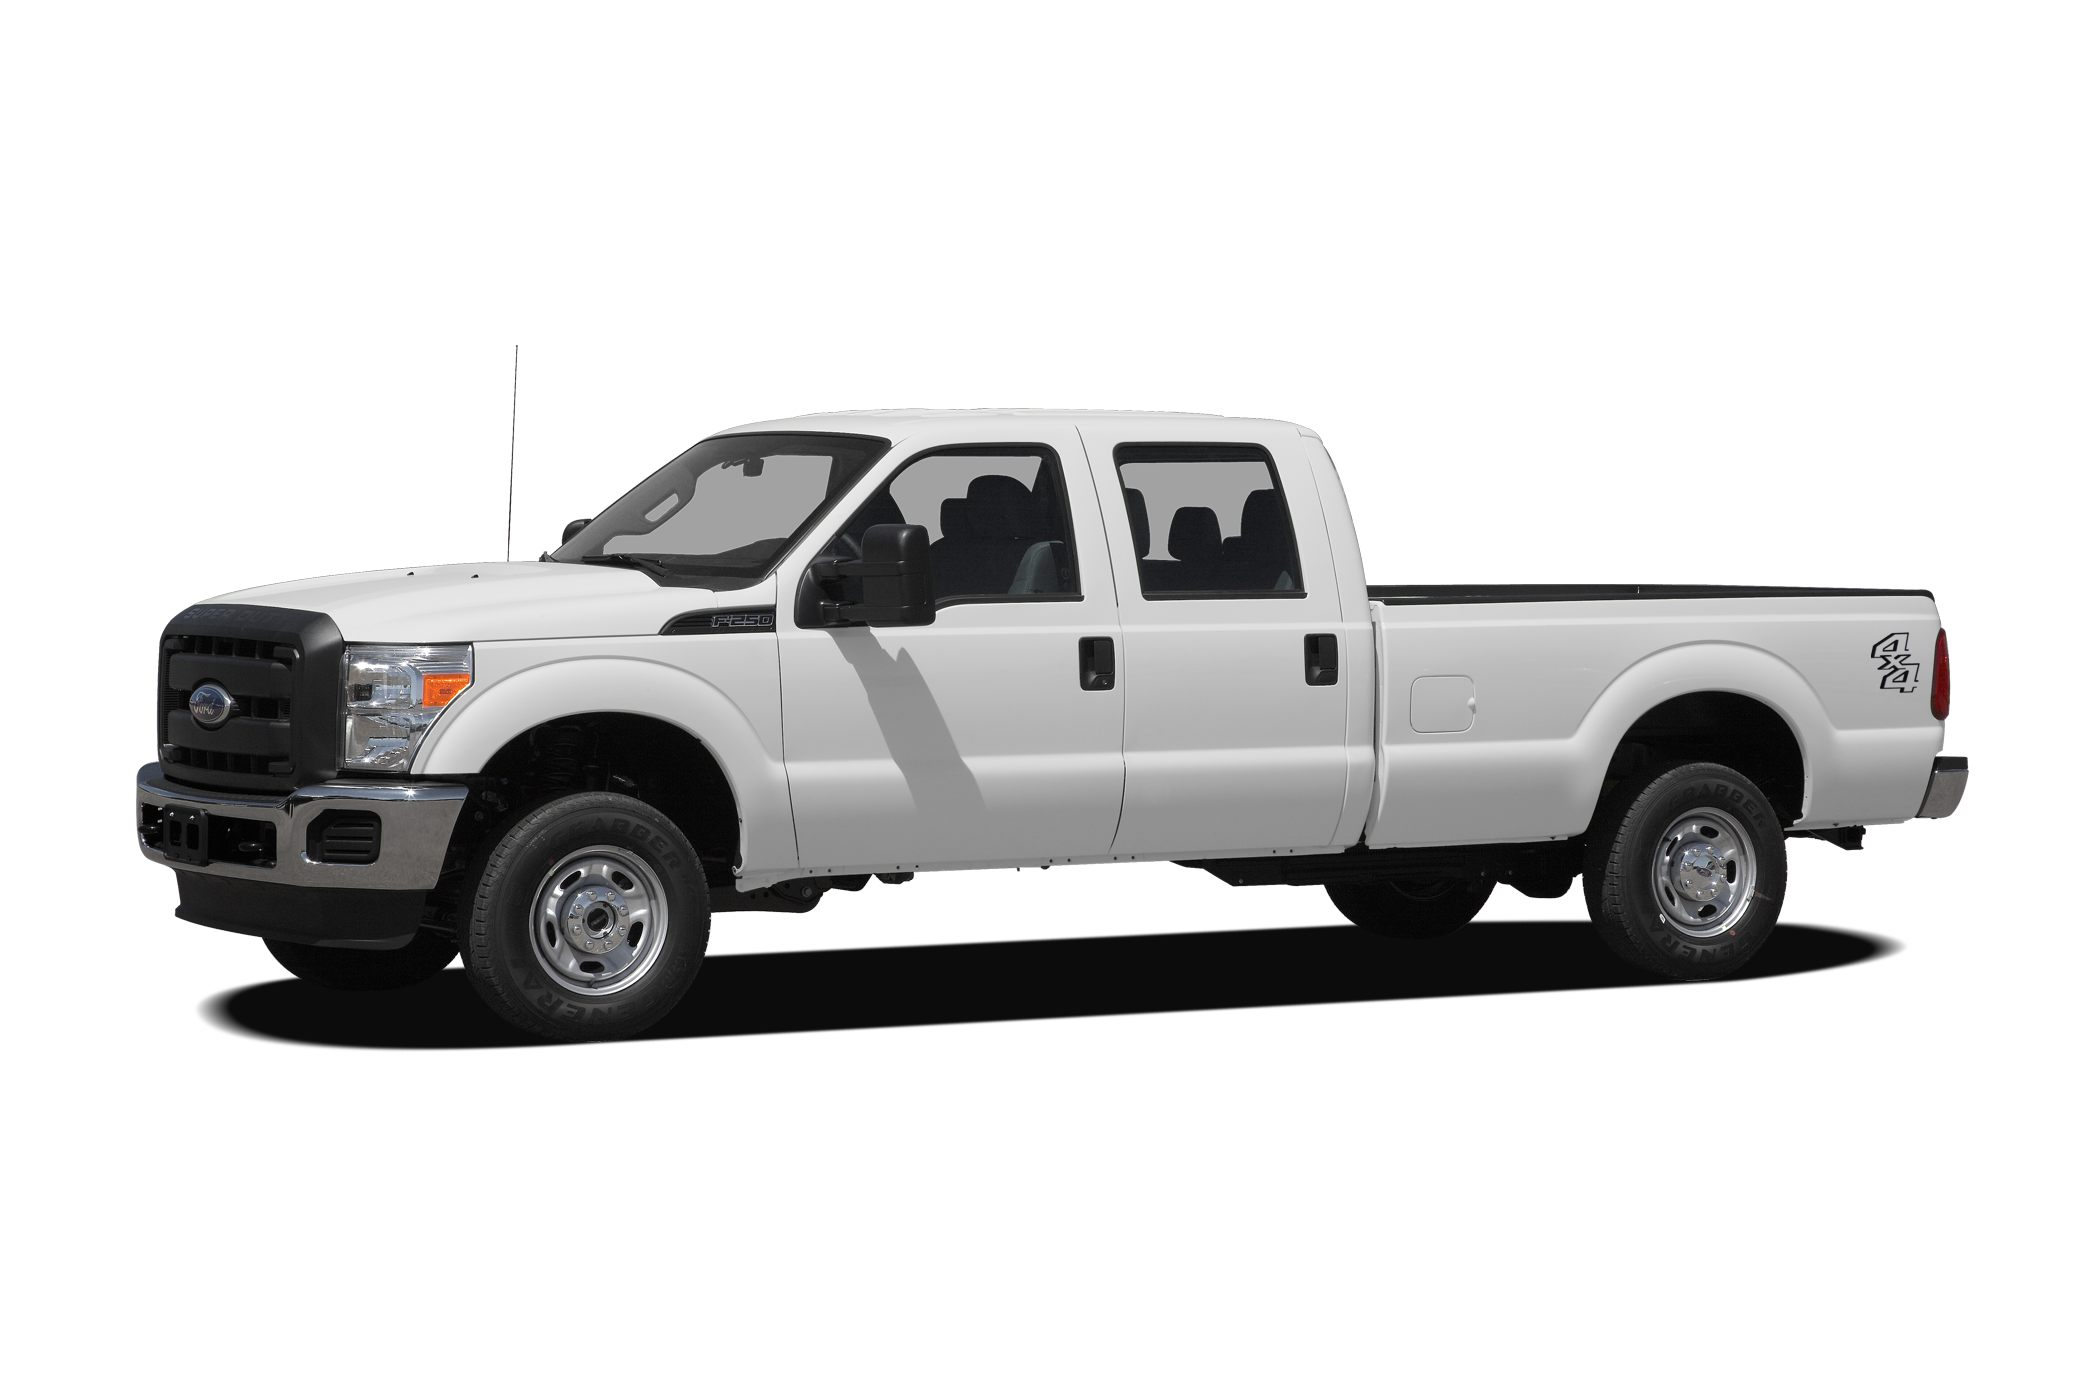 2012 Ford F-250  Introducing the 2012 Ford F-250 Youll appreciate its safety and convenience fea